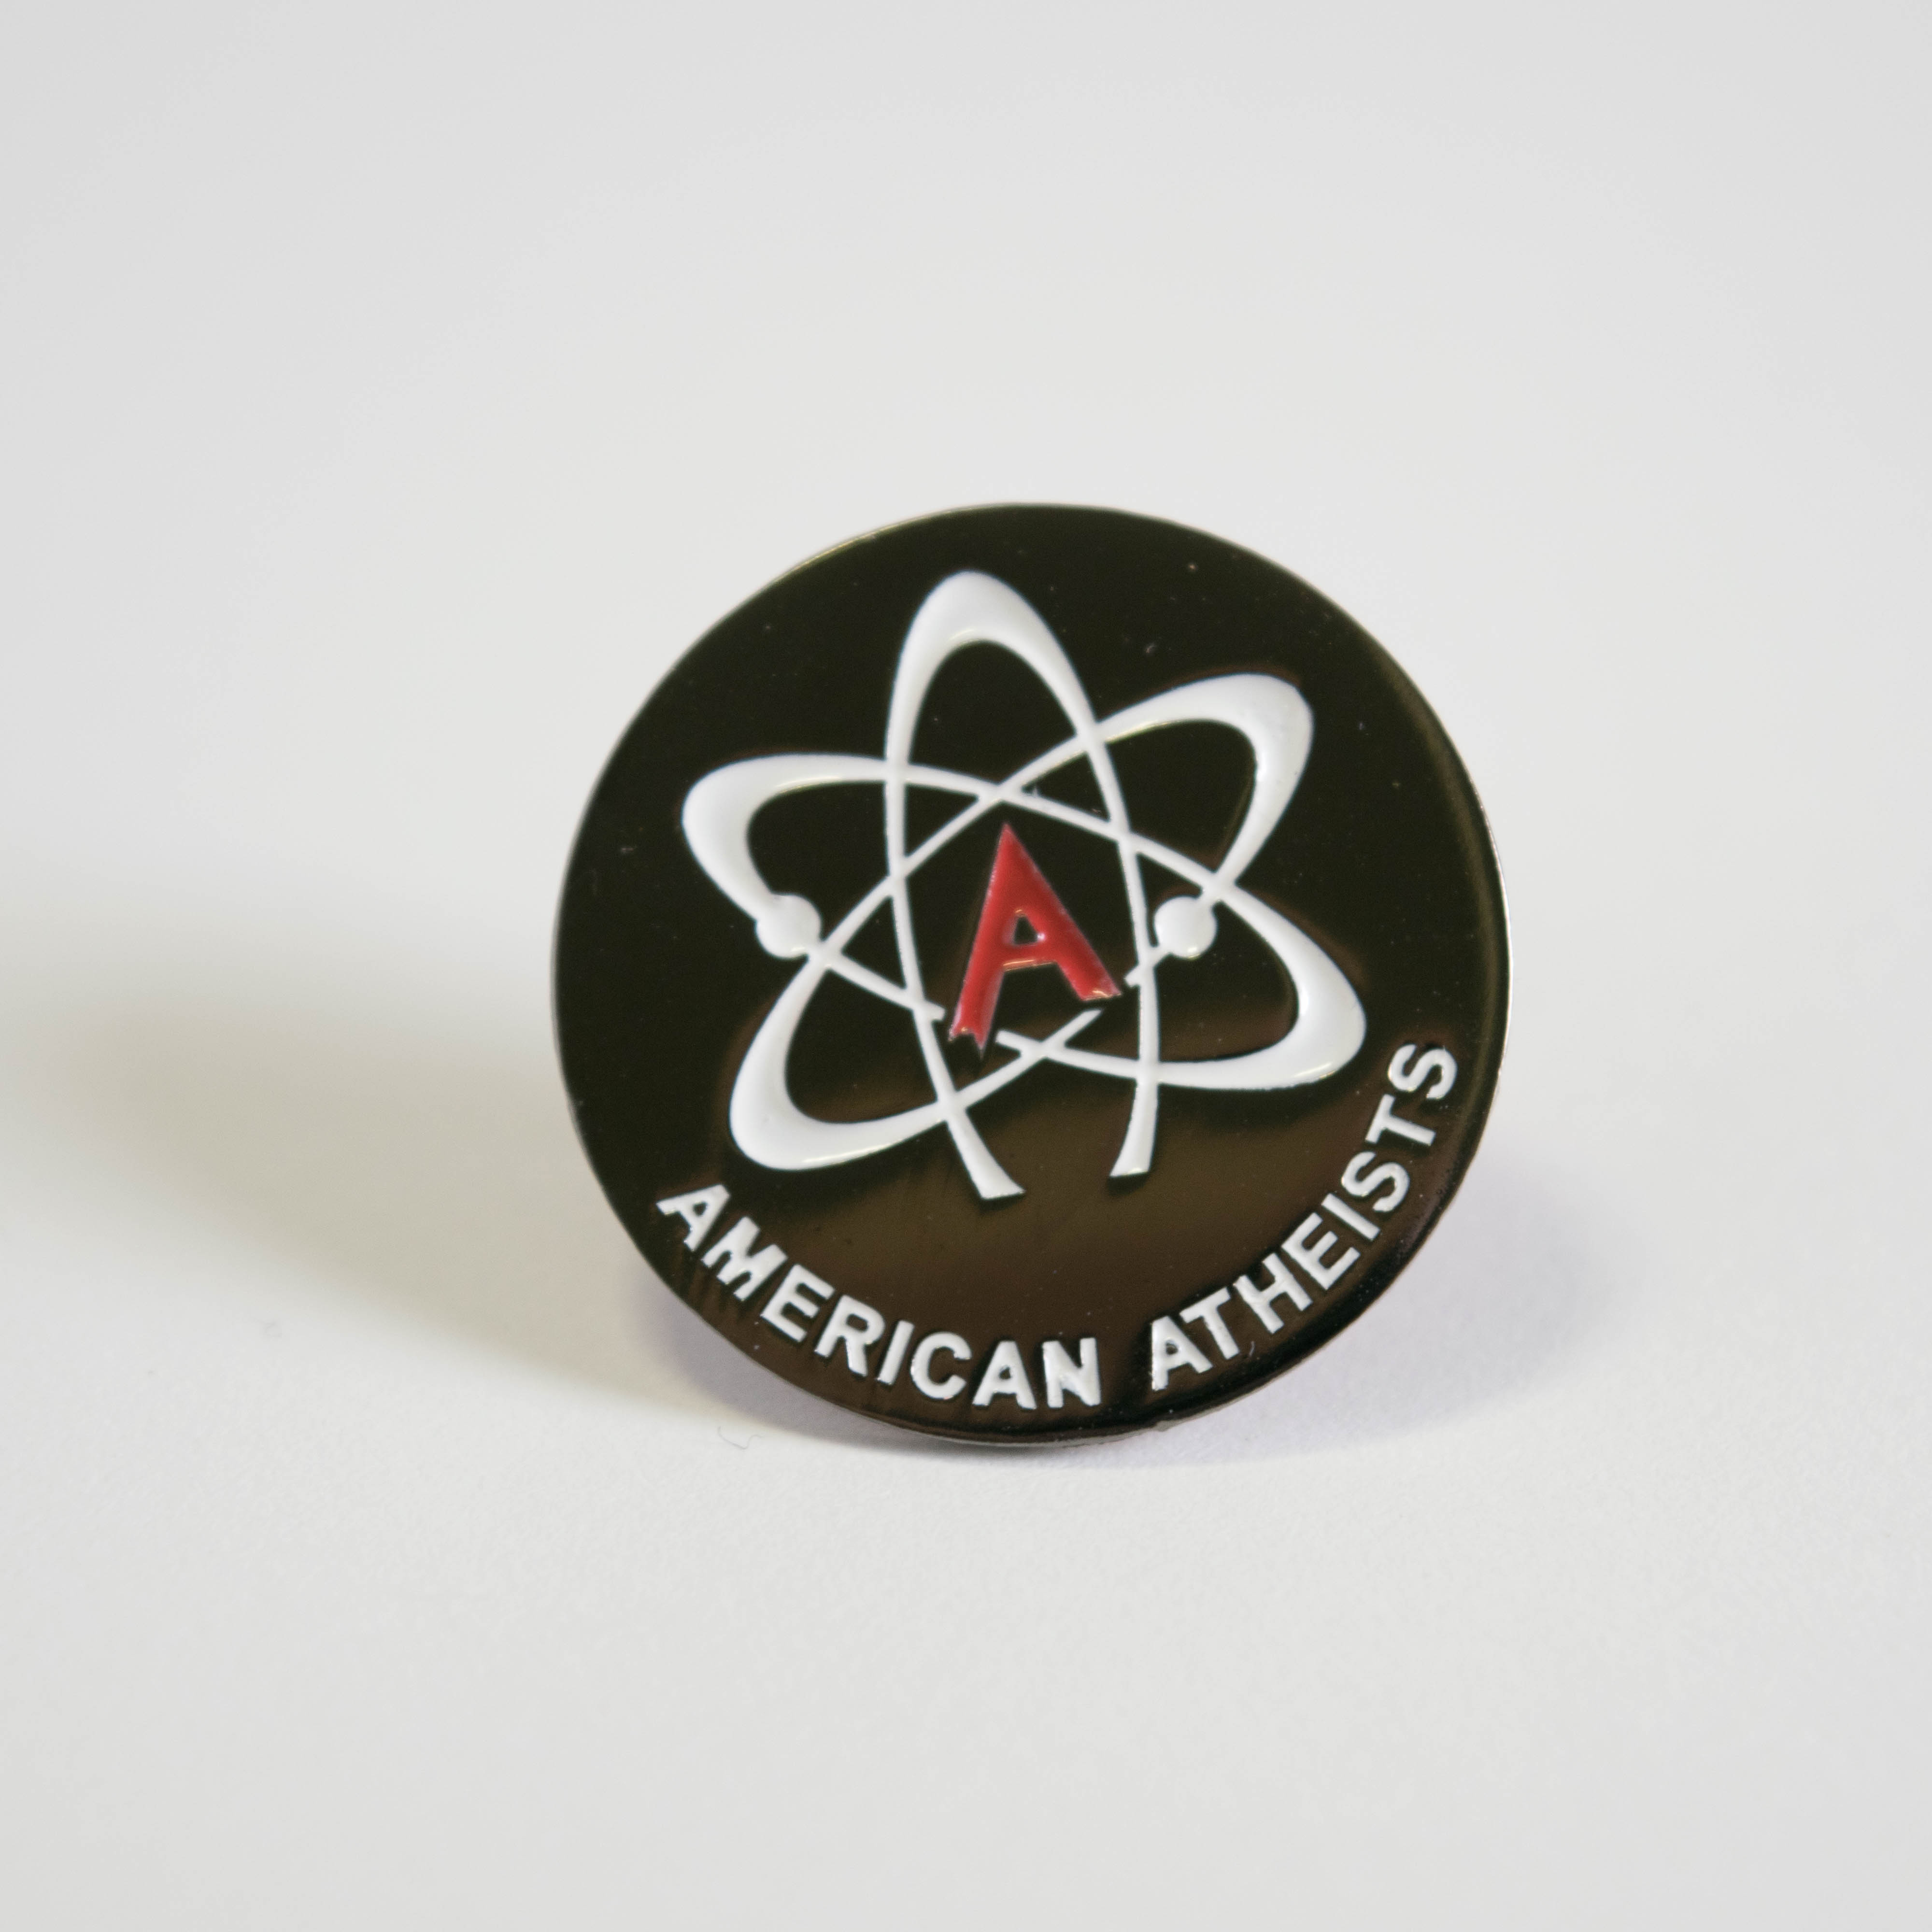 American atheists lapel pin american atheists american atheists lapel pin biocorpaavc Choice Image